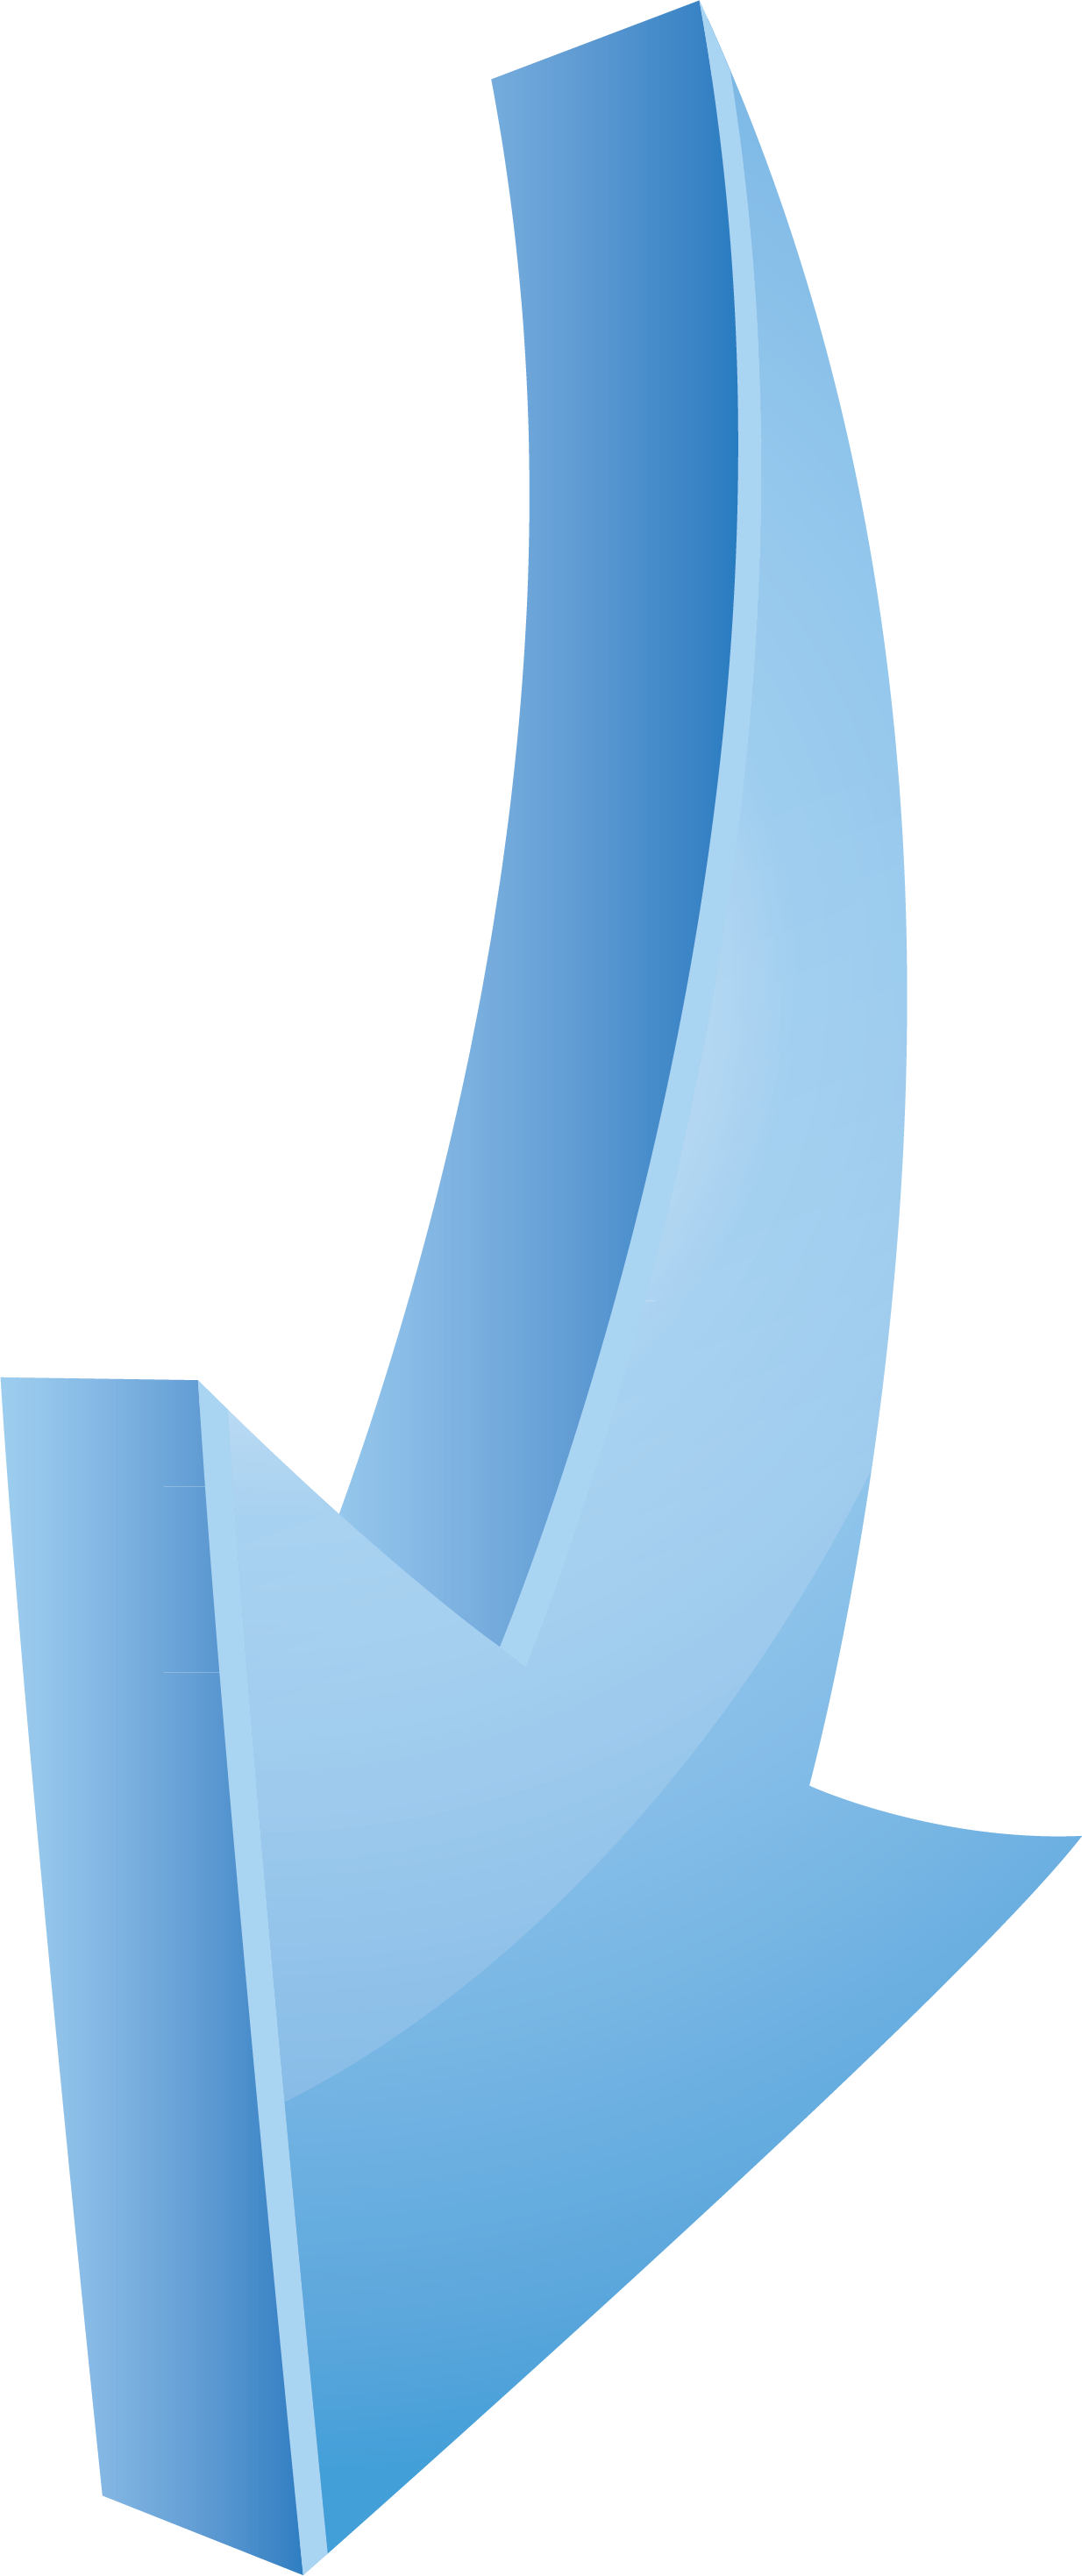 Sort Euclidean Vector Arrow Icon Free Transparent Image HQ PNG Image